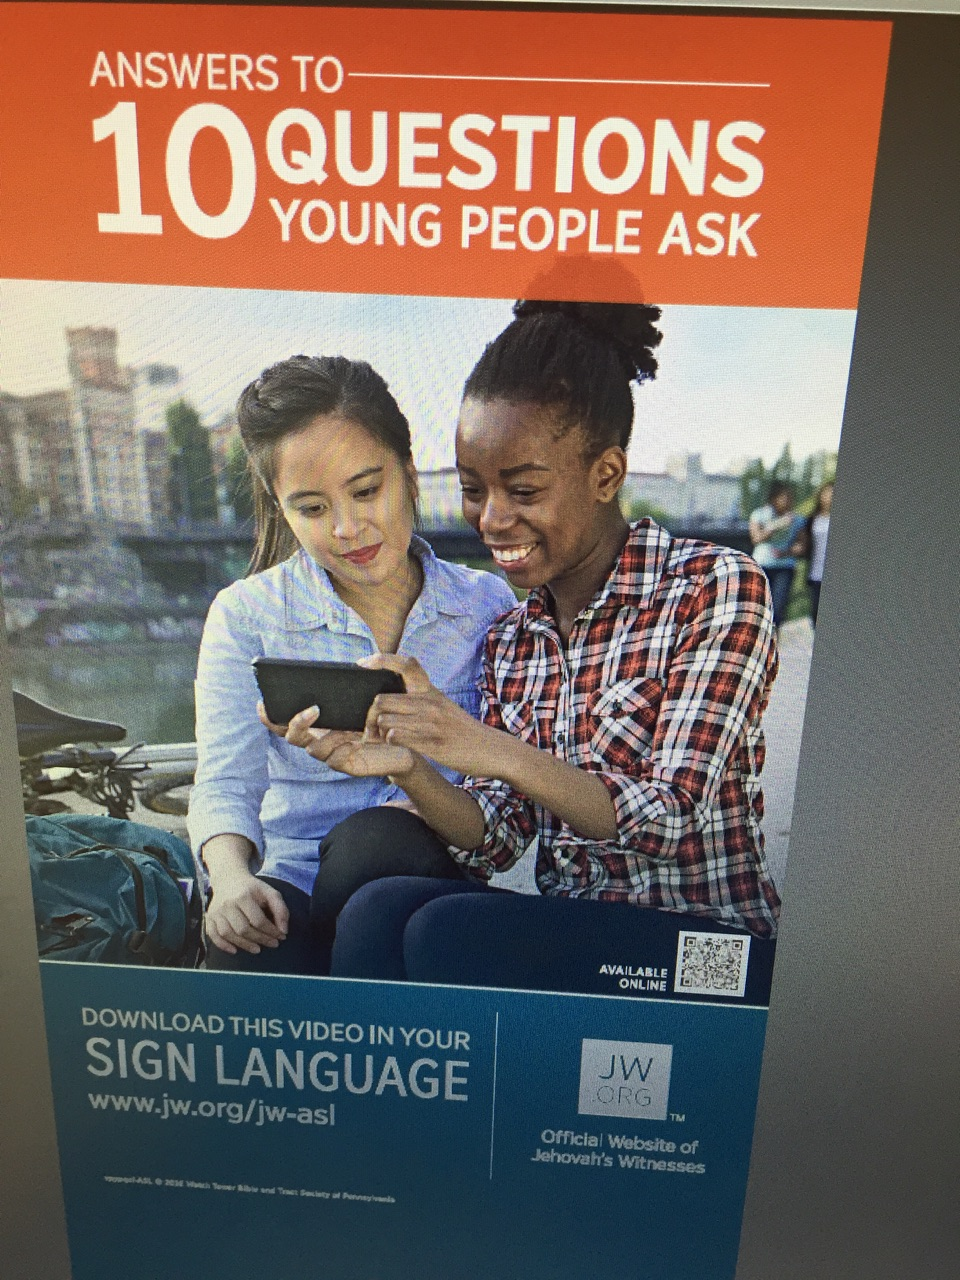 "Specifically for ASL-""Answers to 10 Questions Young People Ask"" (Brochure)"